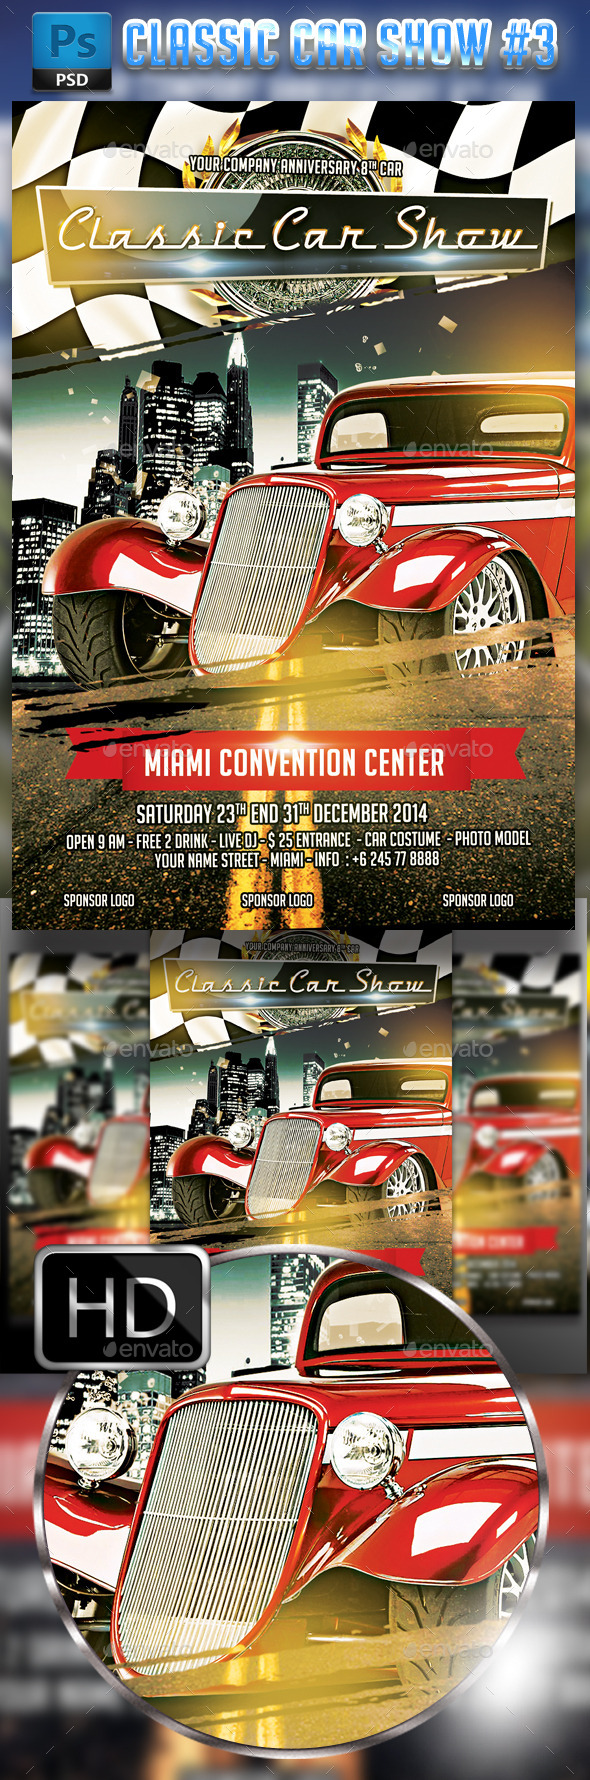 GraphicRiver Classic Car Show flyer #3 9197244